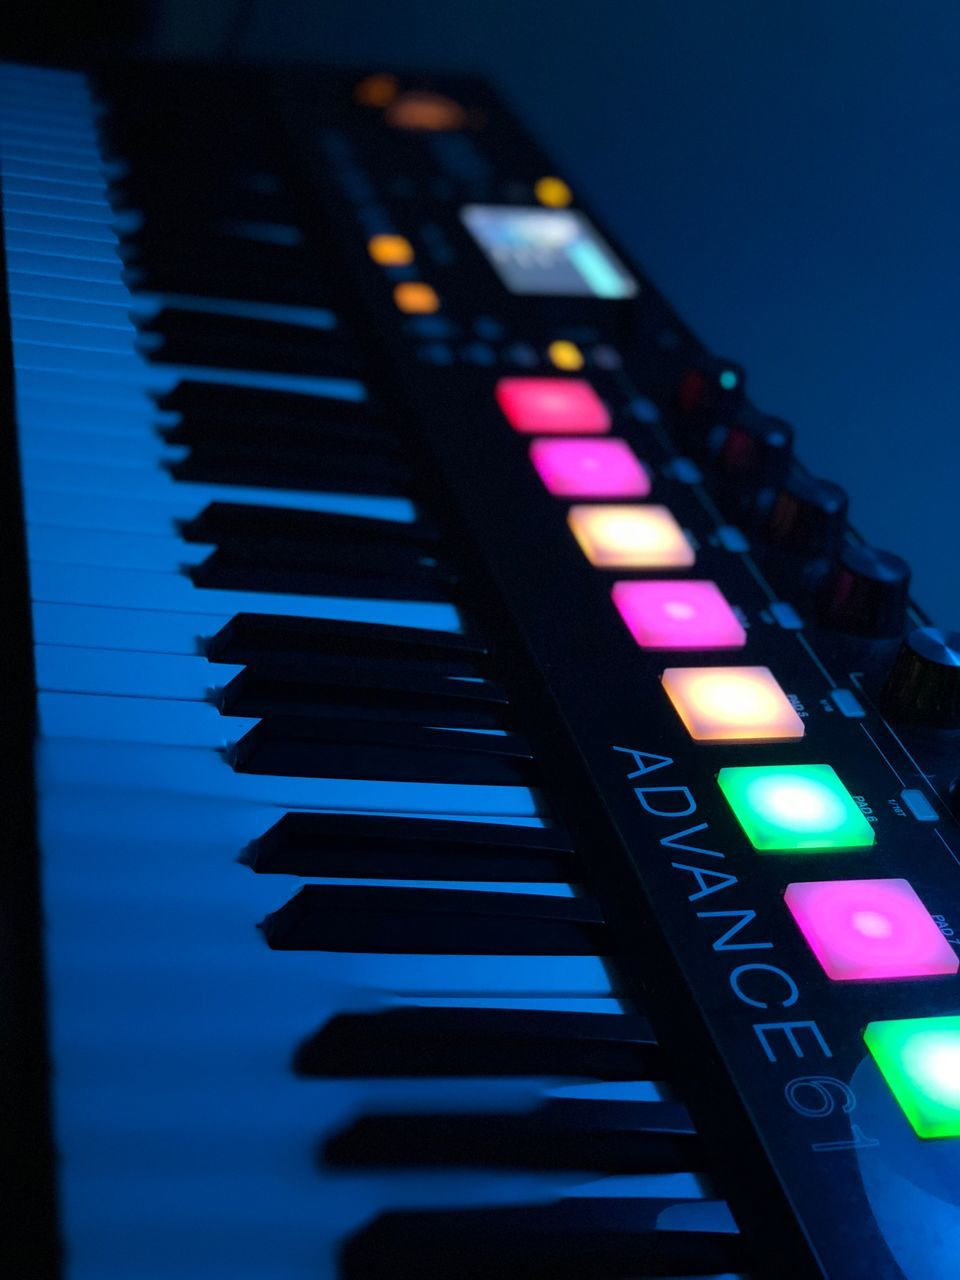 music, arts culture and entertainment, close-up, no people, musical equipment, musical instrument, indoors, piano, piano key, selective focus, illuminated, in a row, technology, keyboard, focus on foreground, multi colored, communication, reflection, blue, pink color, keyboard instrument